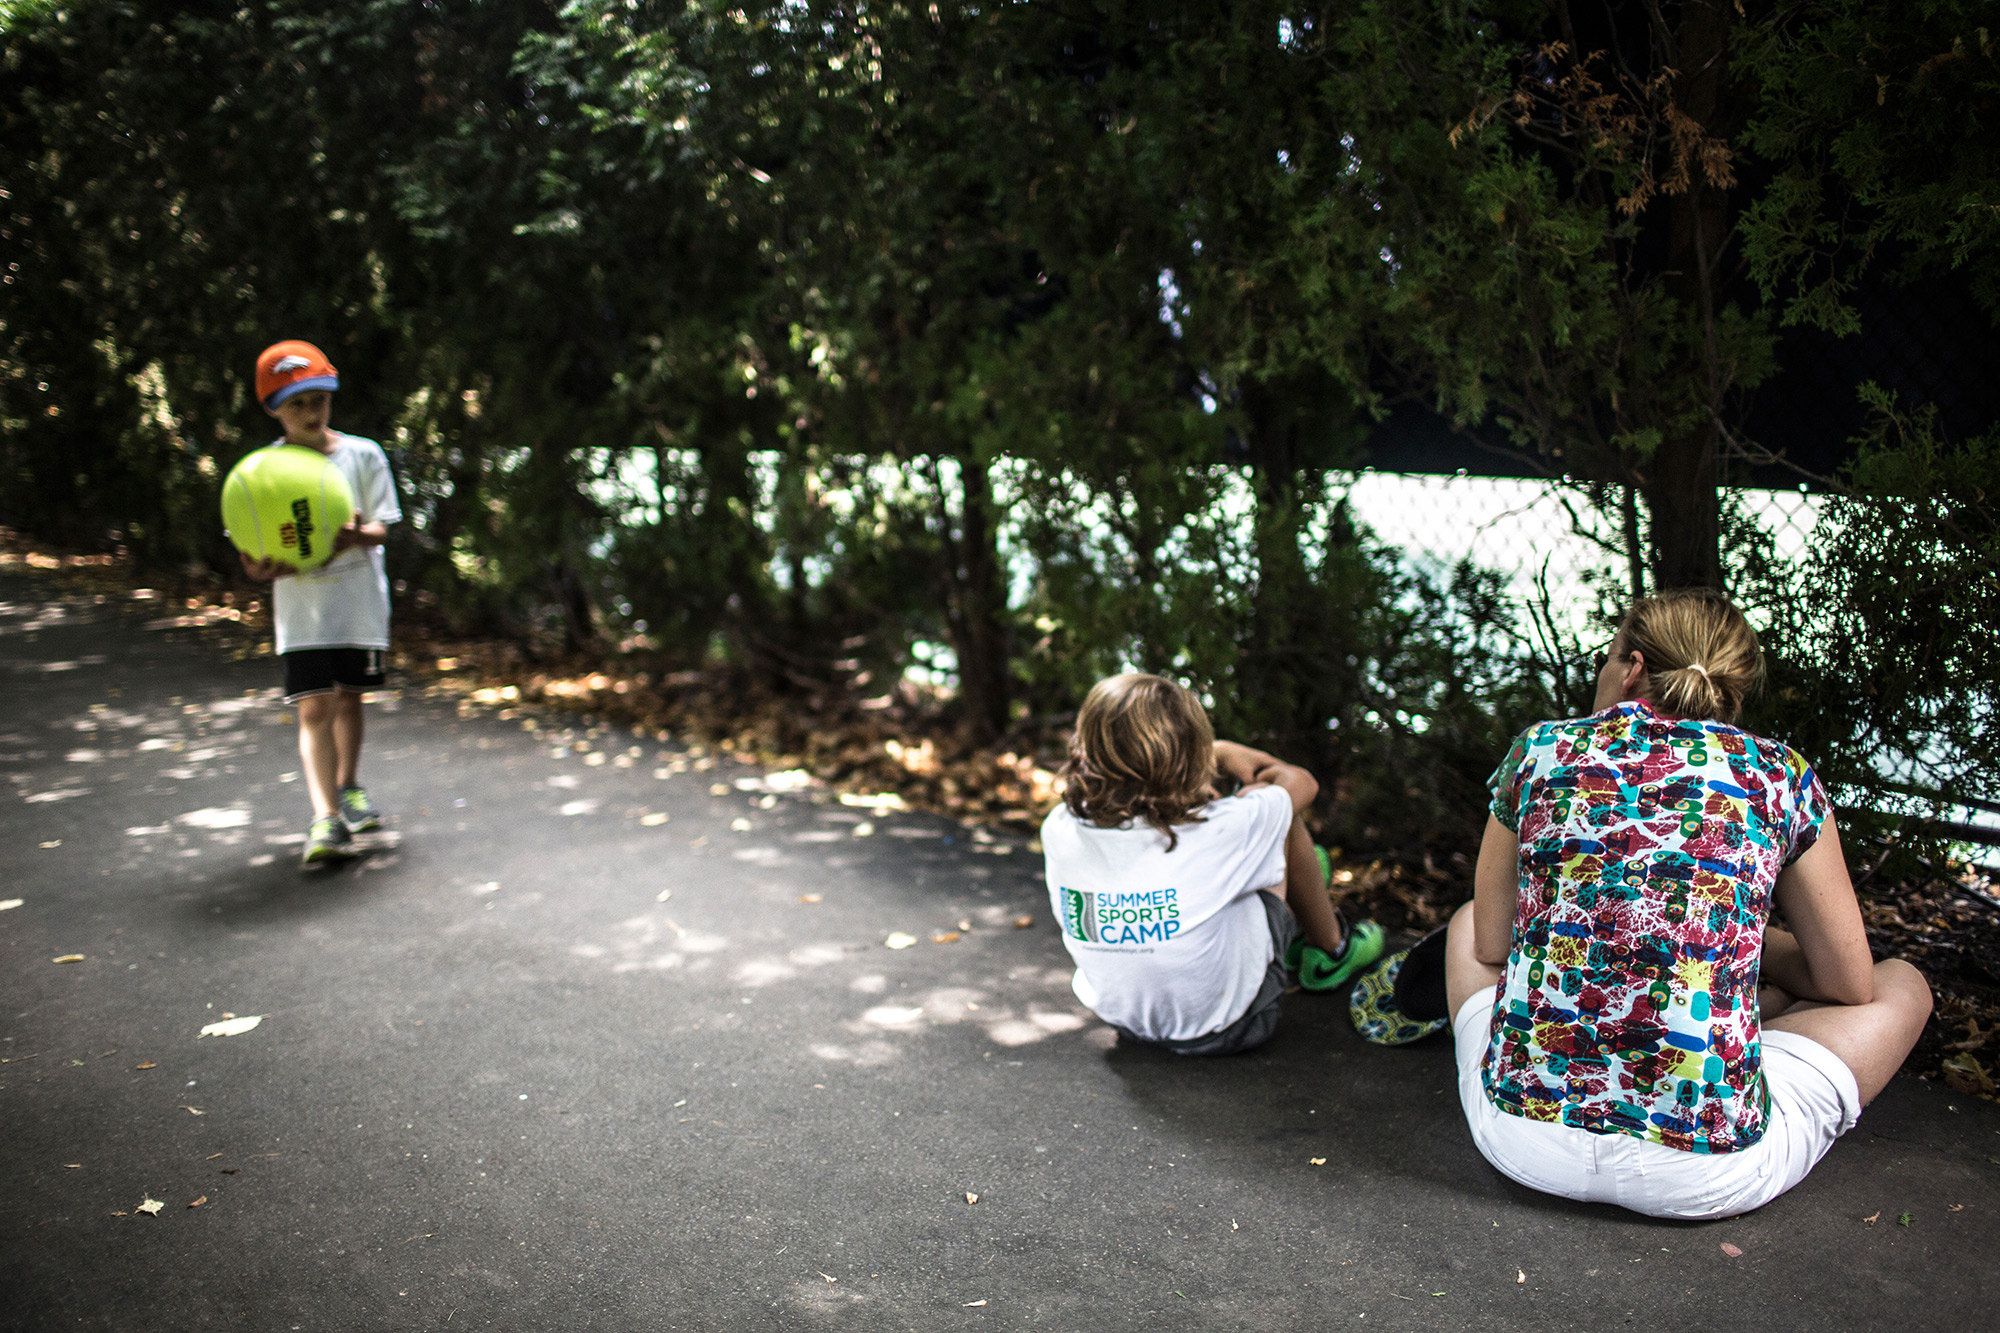 A mother and her two young sons escaped the heat and the crowds and took a break behind the court in a rare shady area.